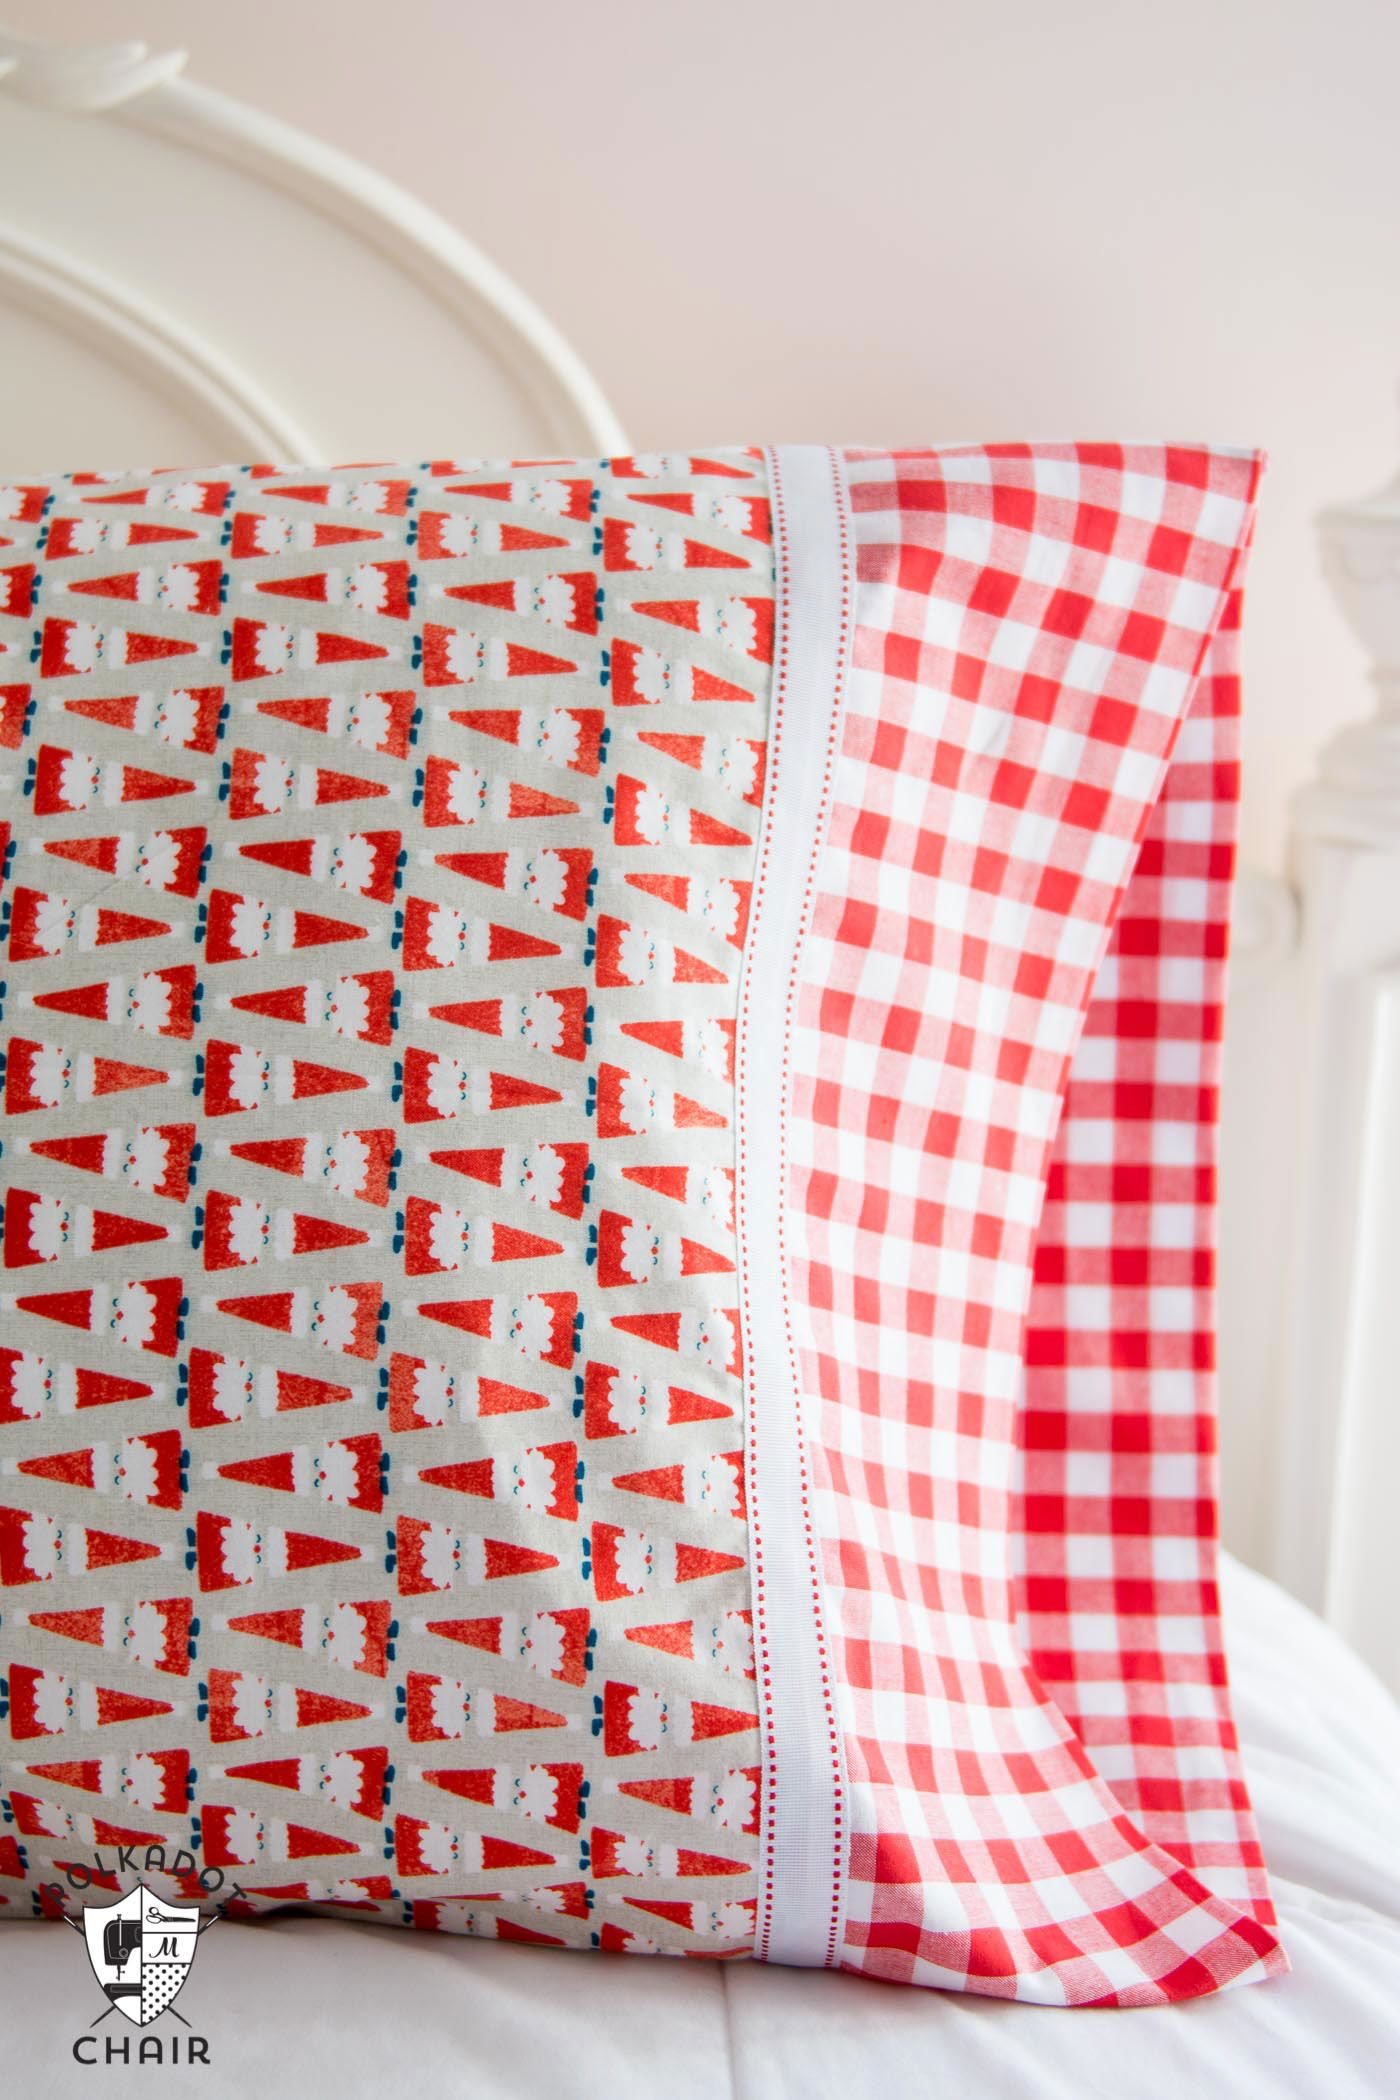 A quick and easy way to sew a pillowcase   Tela, Costura y Coser